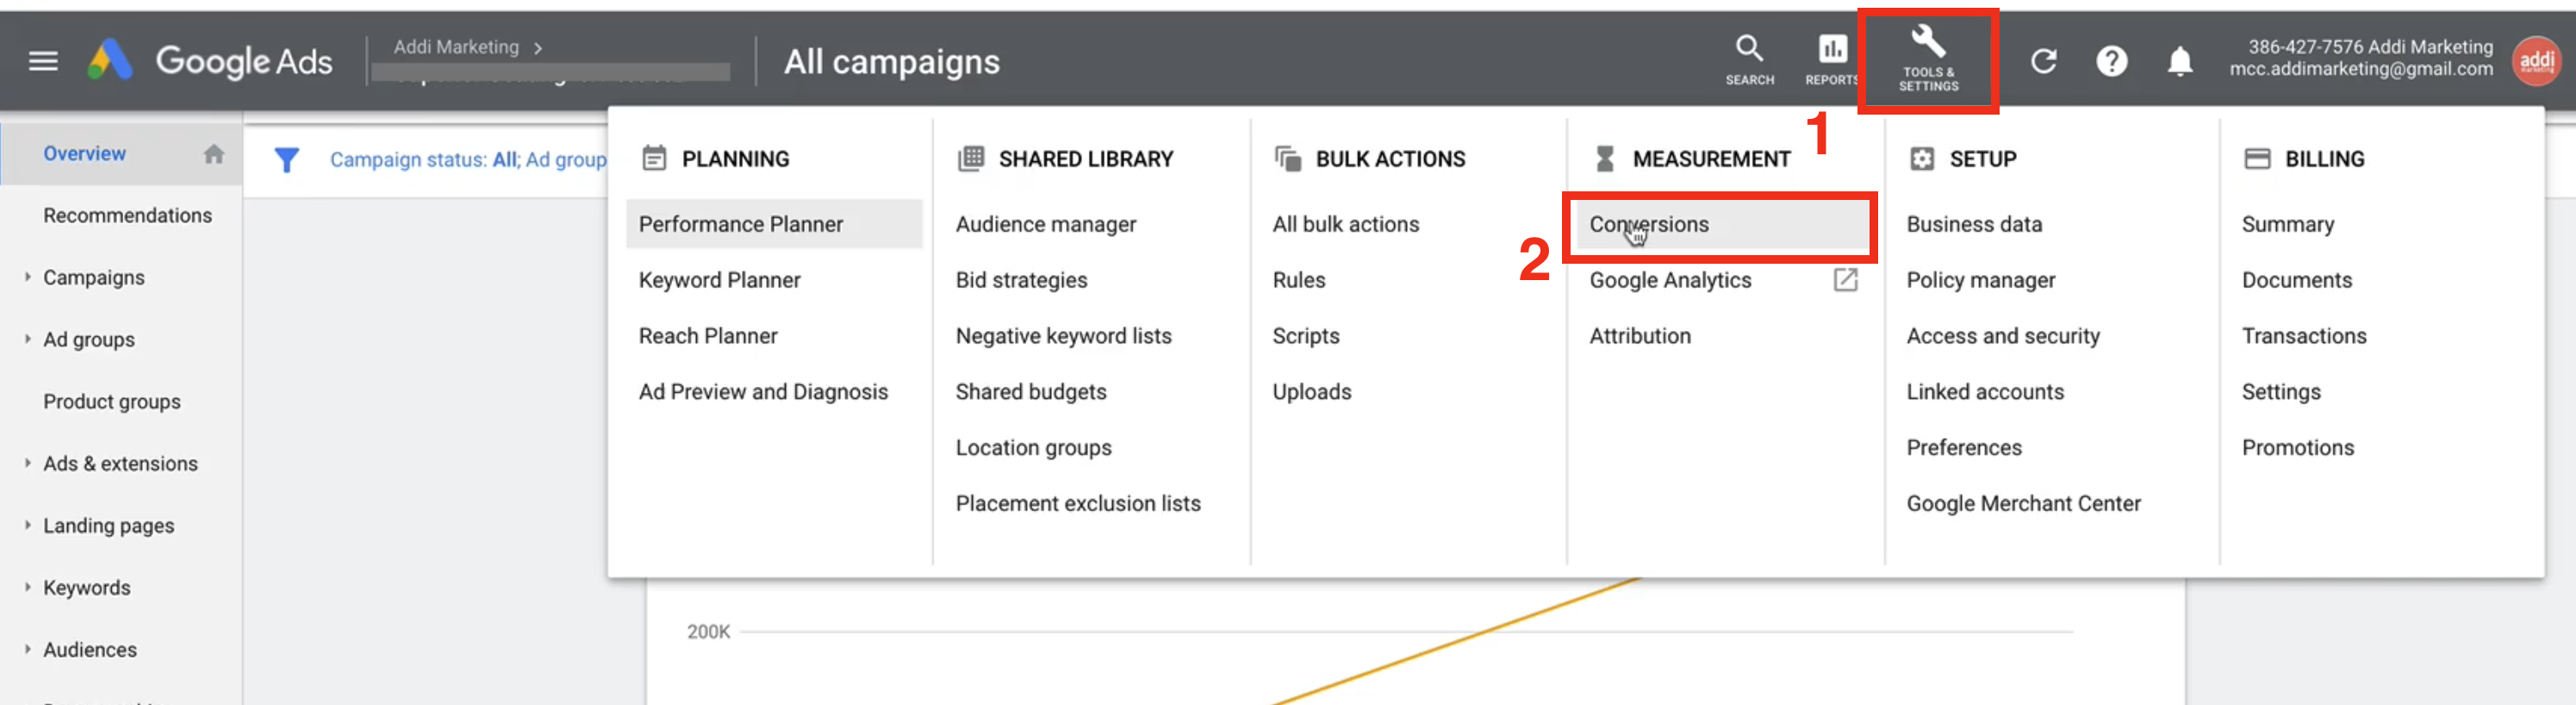 First seps to create a Google Ads conversion